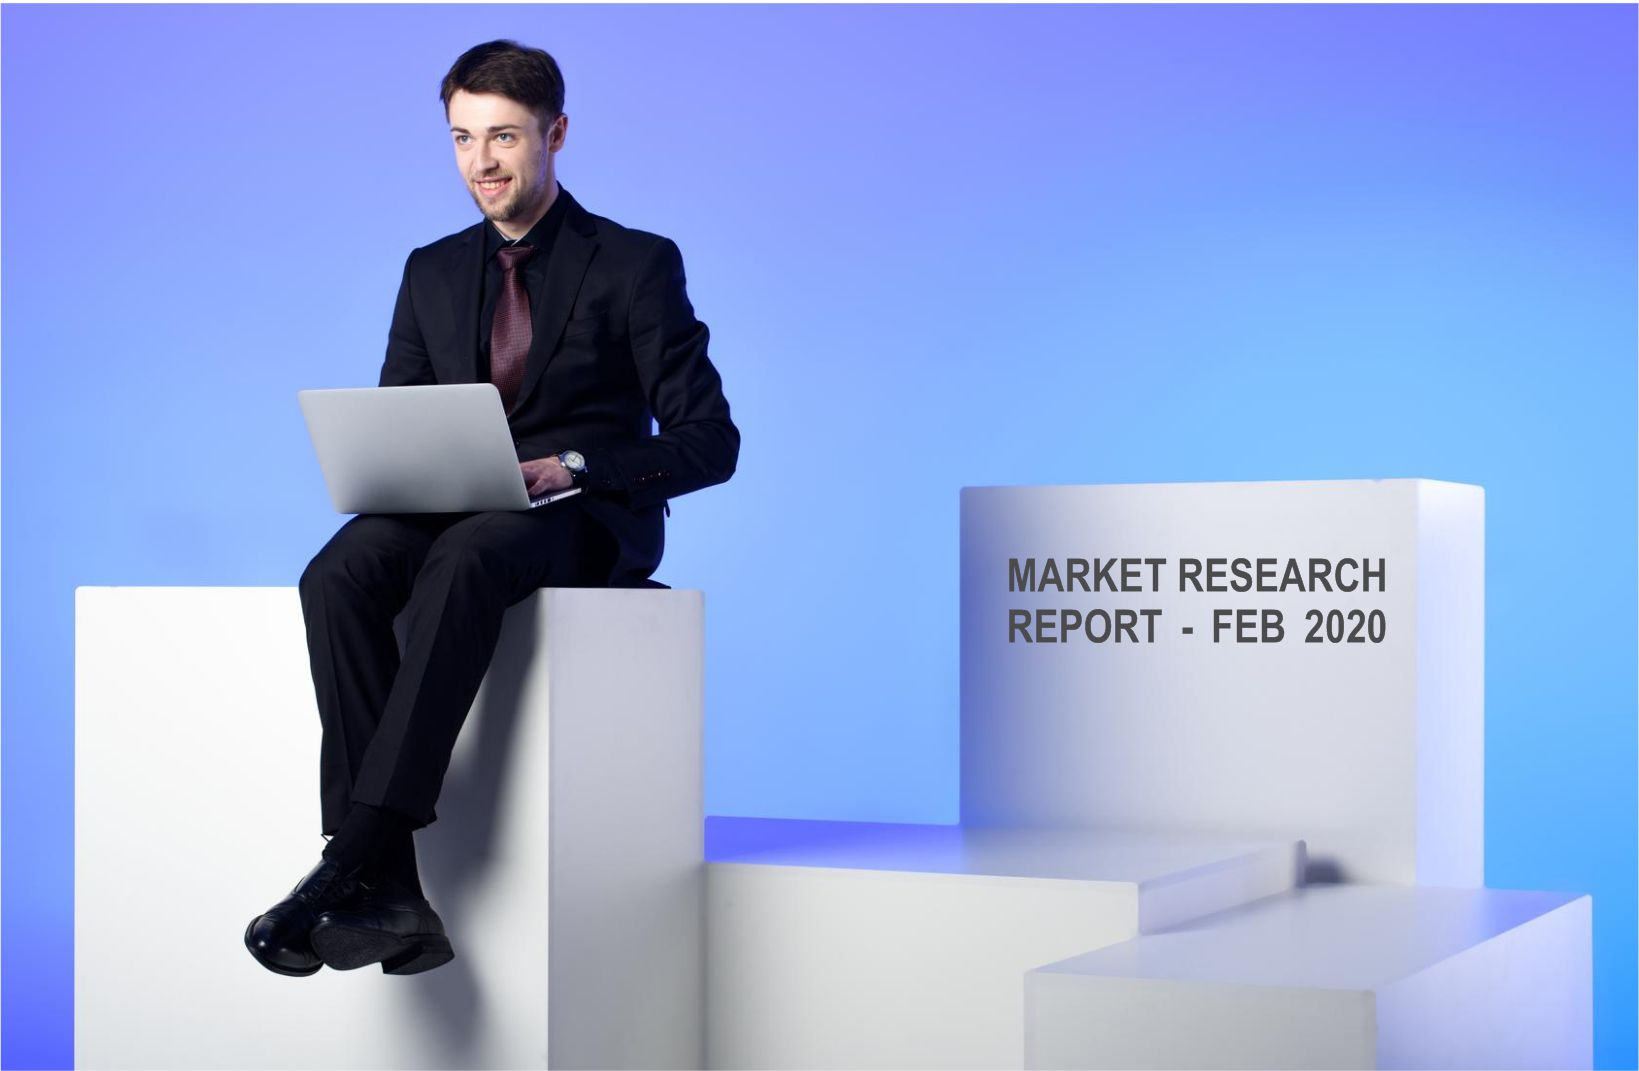 Market research report - Feb 2020